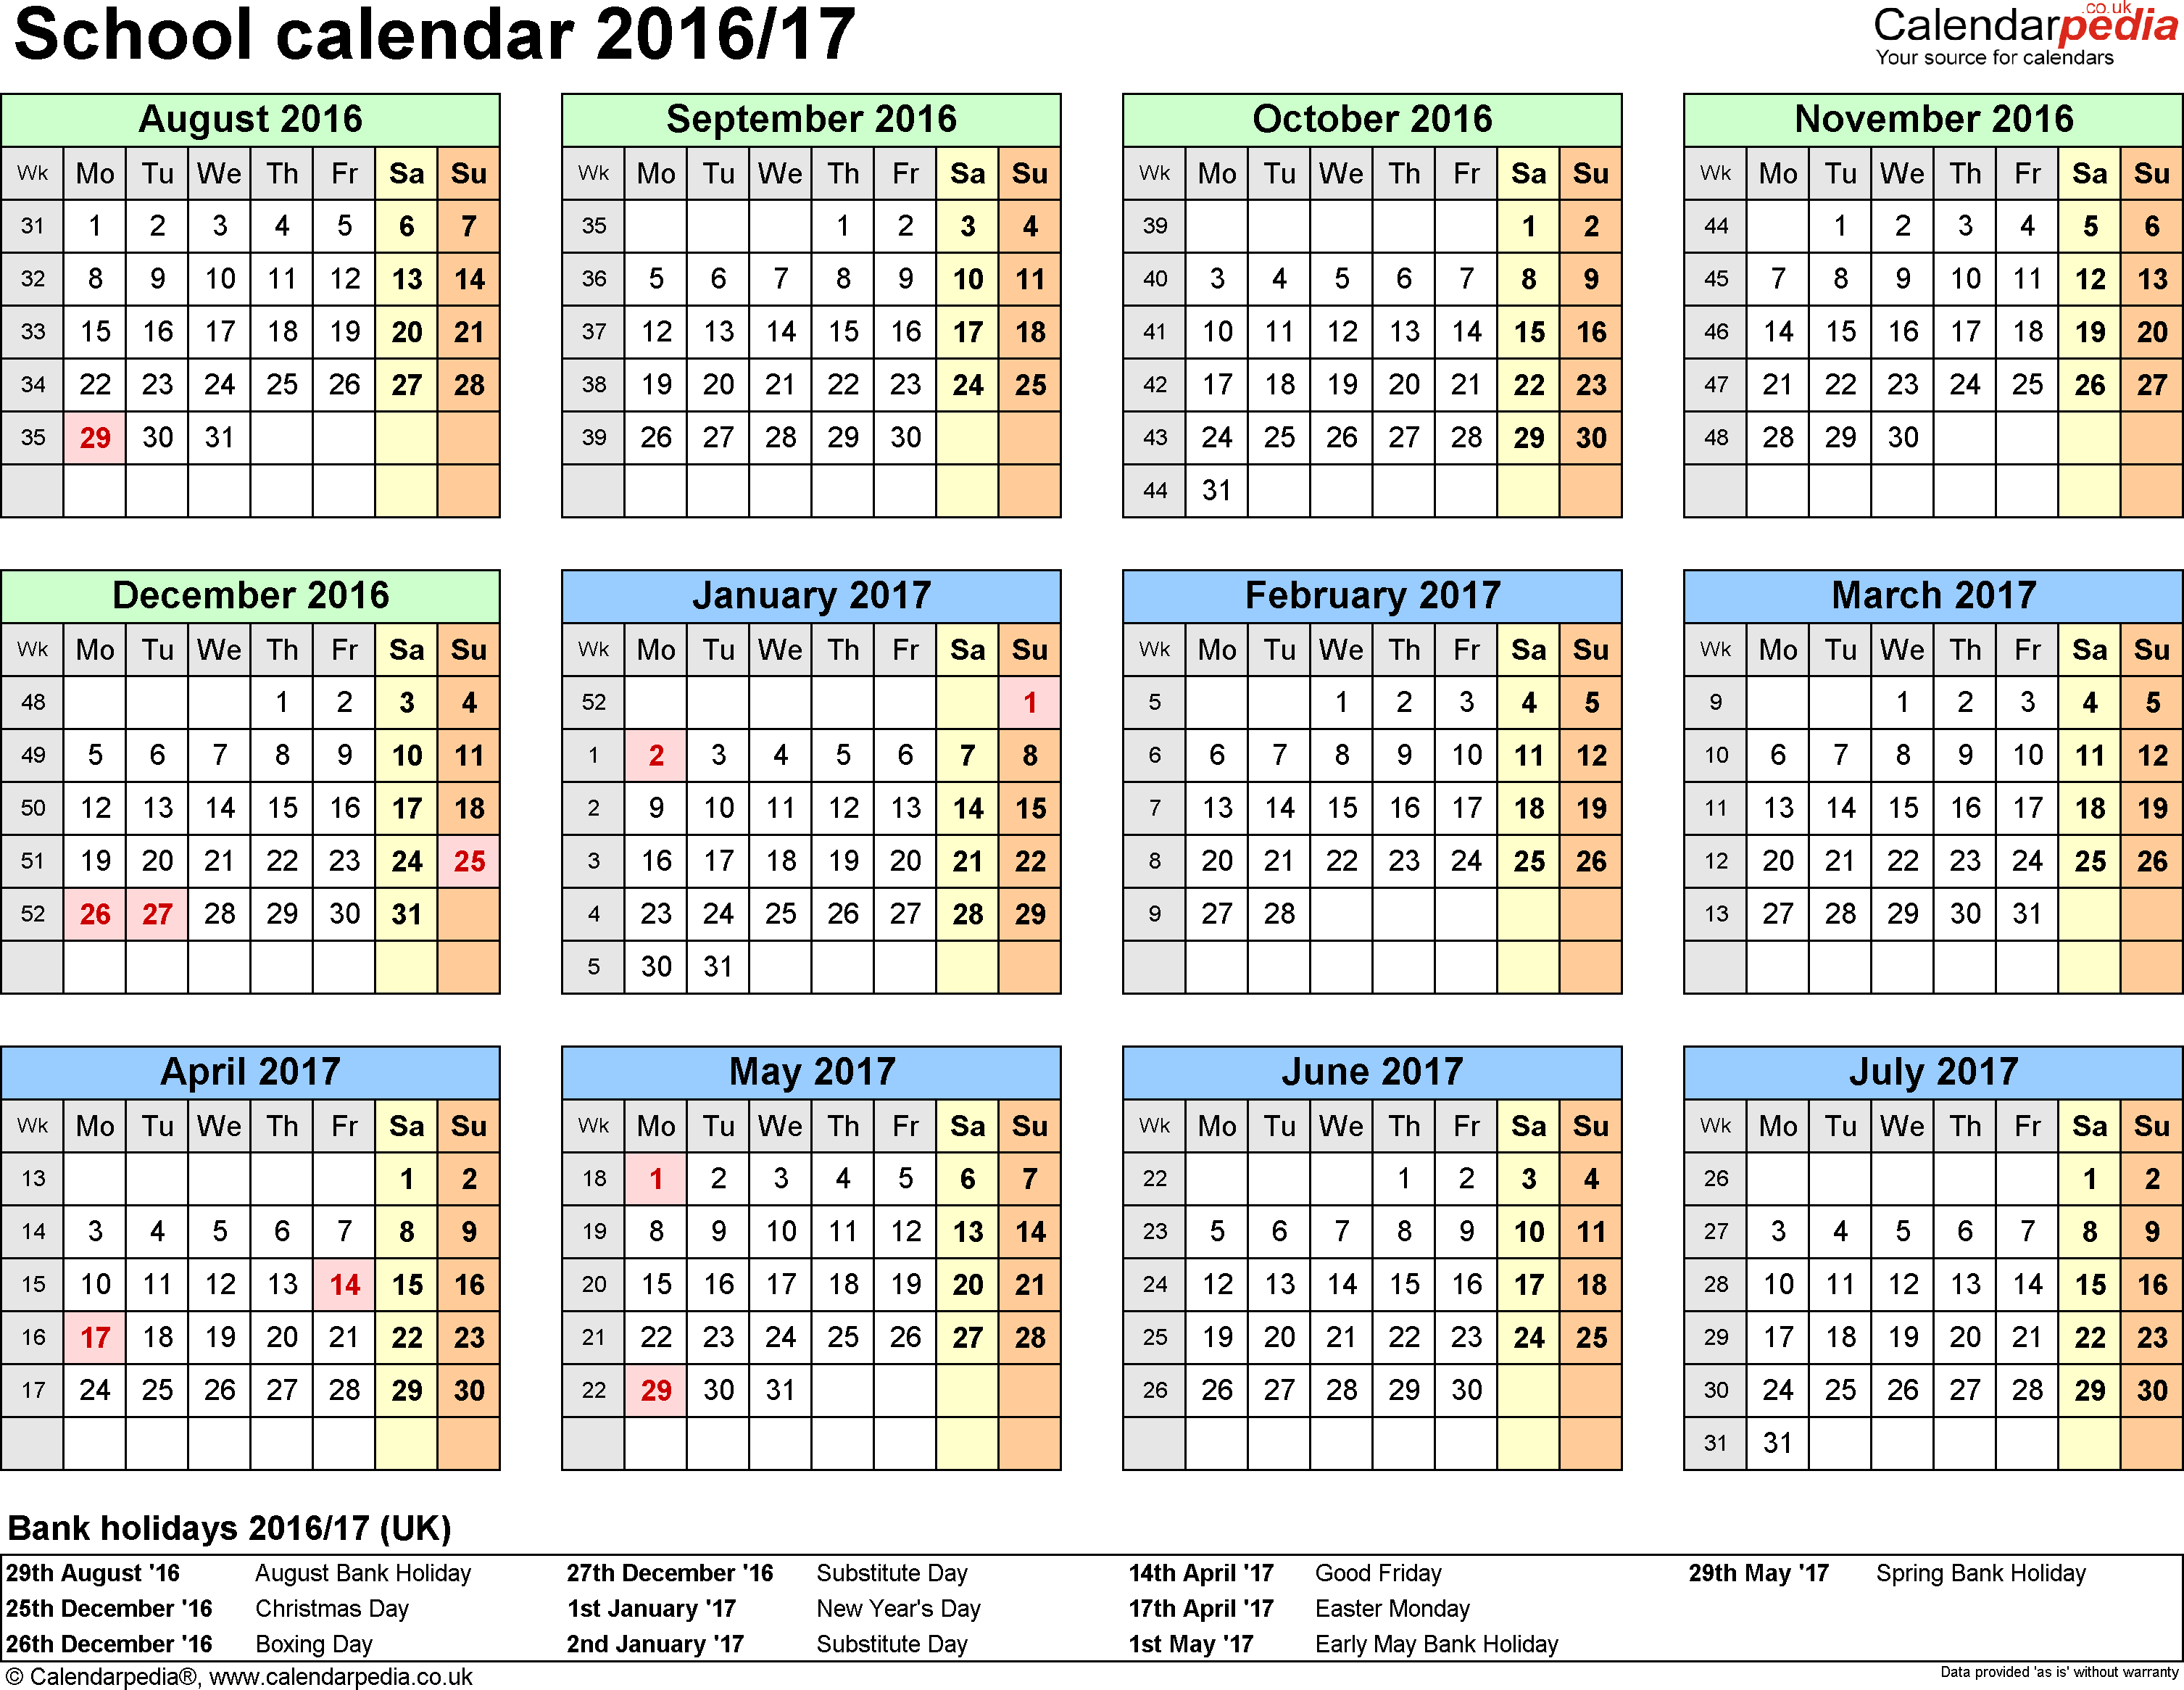 Download Template 4: School year calendars 2016/17 for PDF, year at a glance, 1 page